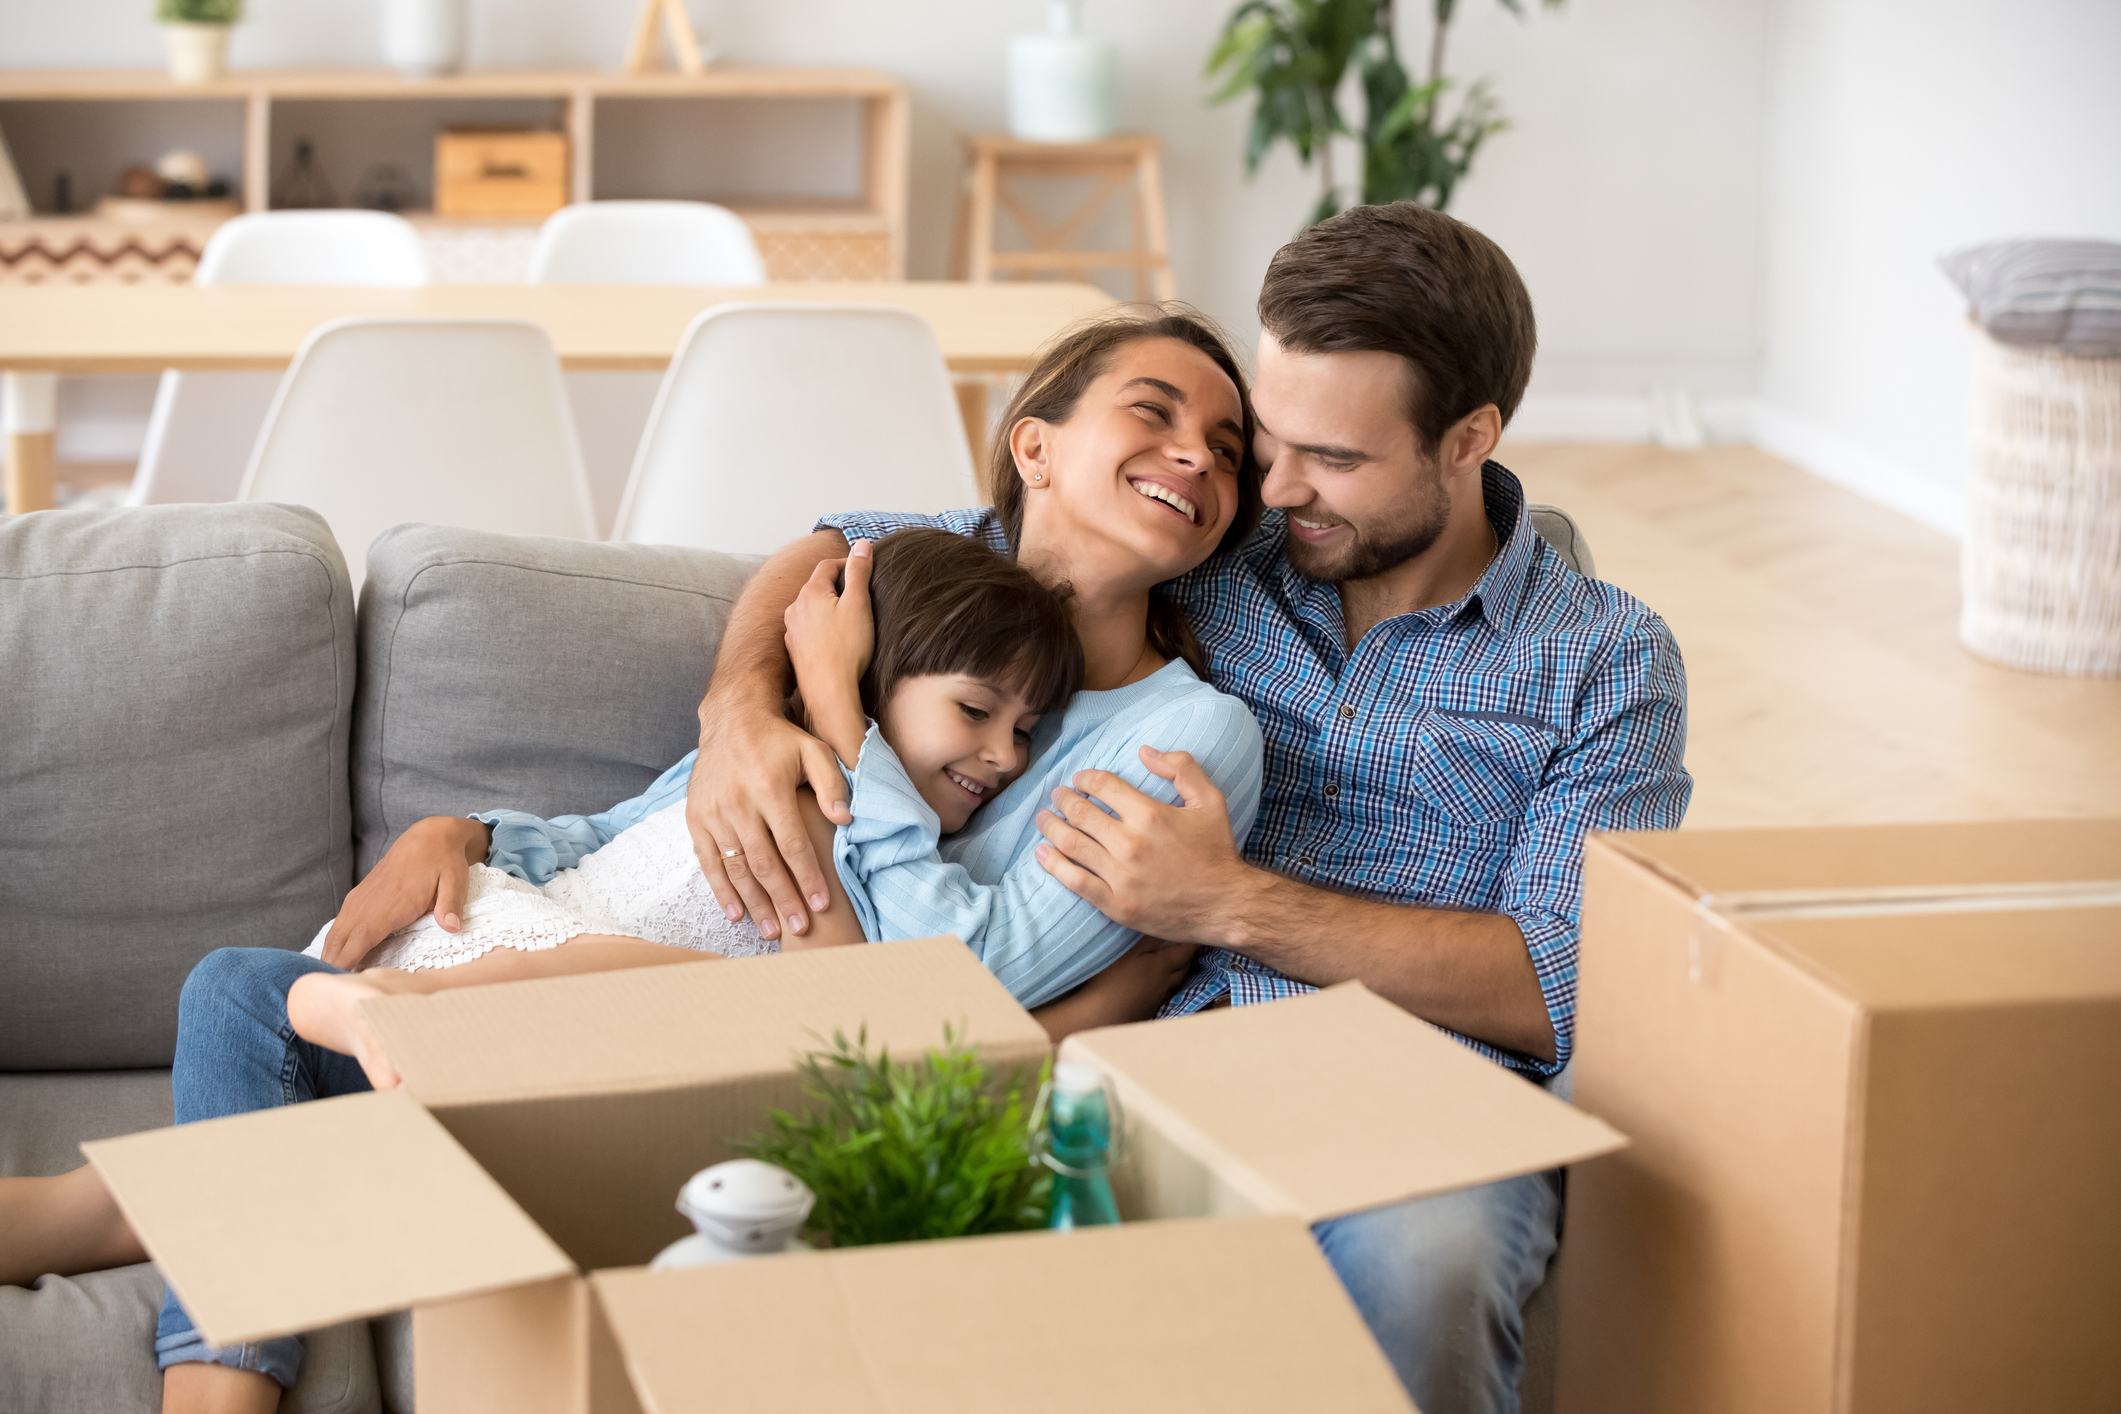 Happy mom dad with kid daughter embracing smiling relaxing on couch after relocation moving to Tampa in new home concept, young parents hugging child girl sitting on sofa unpacking boxes, family moving day